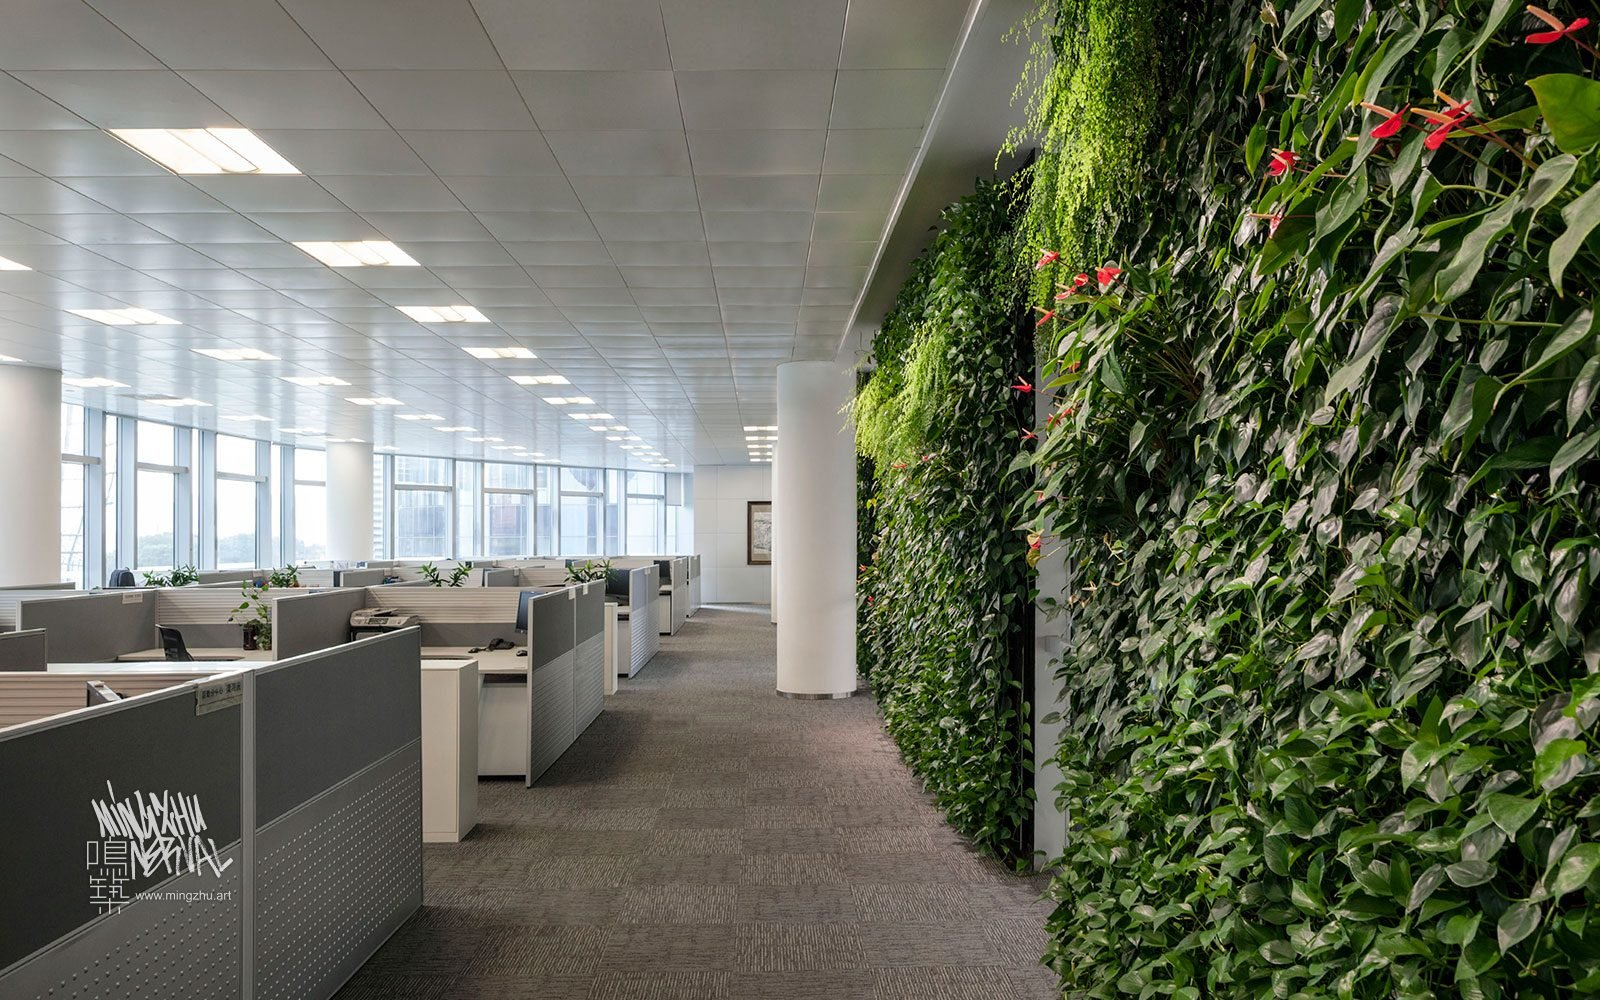 At Mingzhu Nerval, we thrive at creating the most beautiful vertical gardens in the world. For ICBC, we created a healthy nature workspace design - Shanghai, 2012.